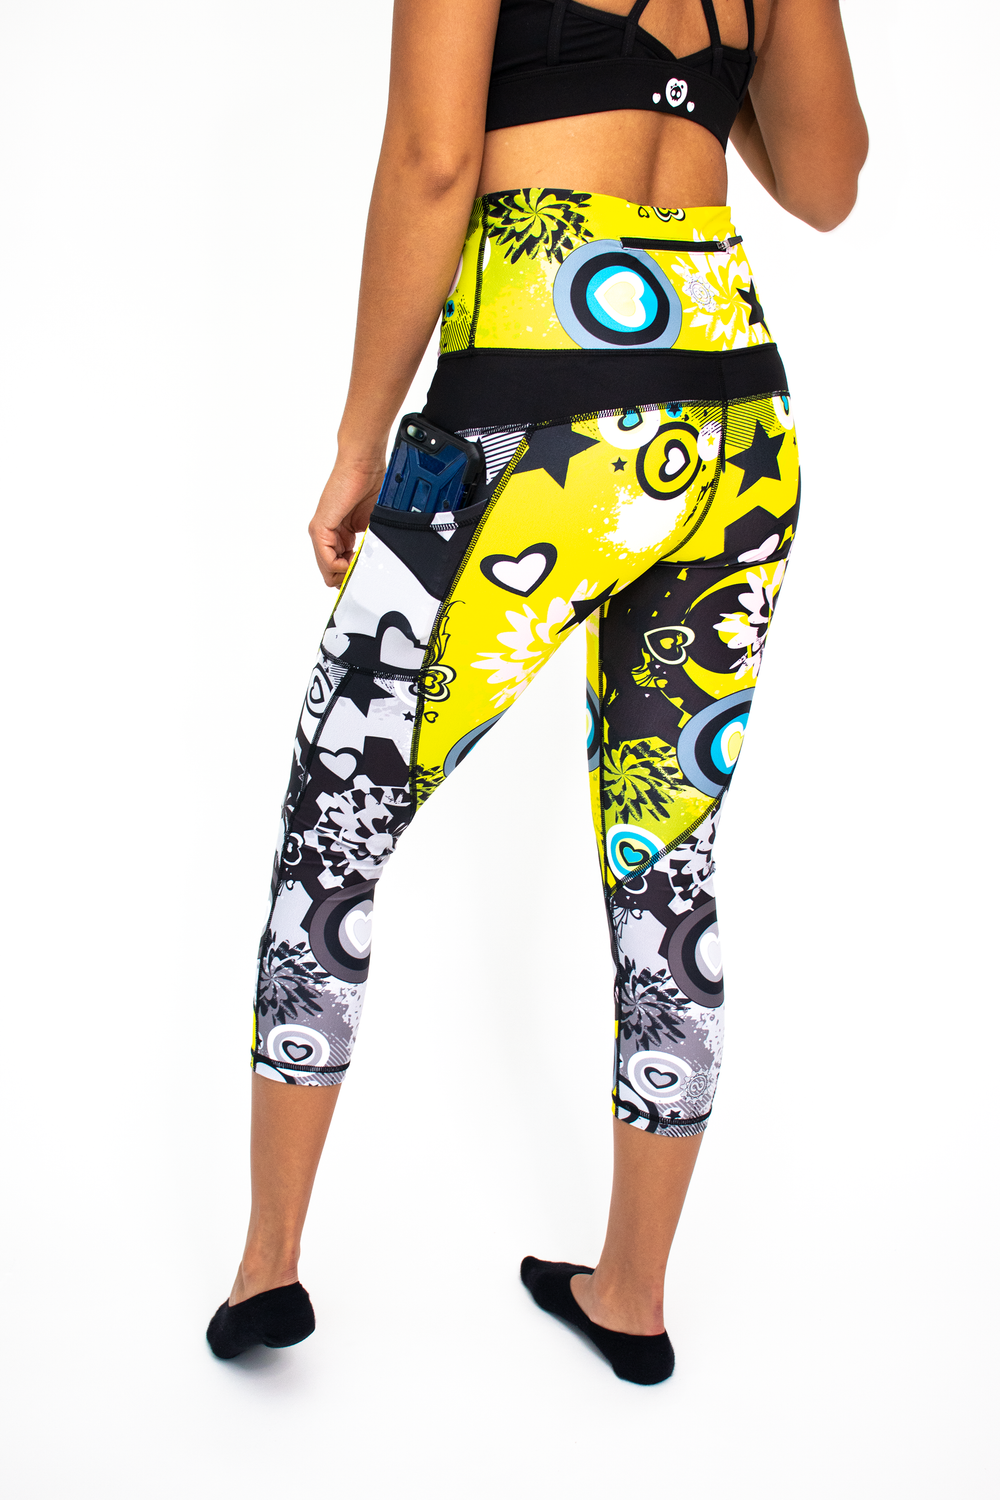 Women's Neon Space Cadet Workout Capri